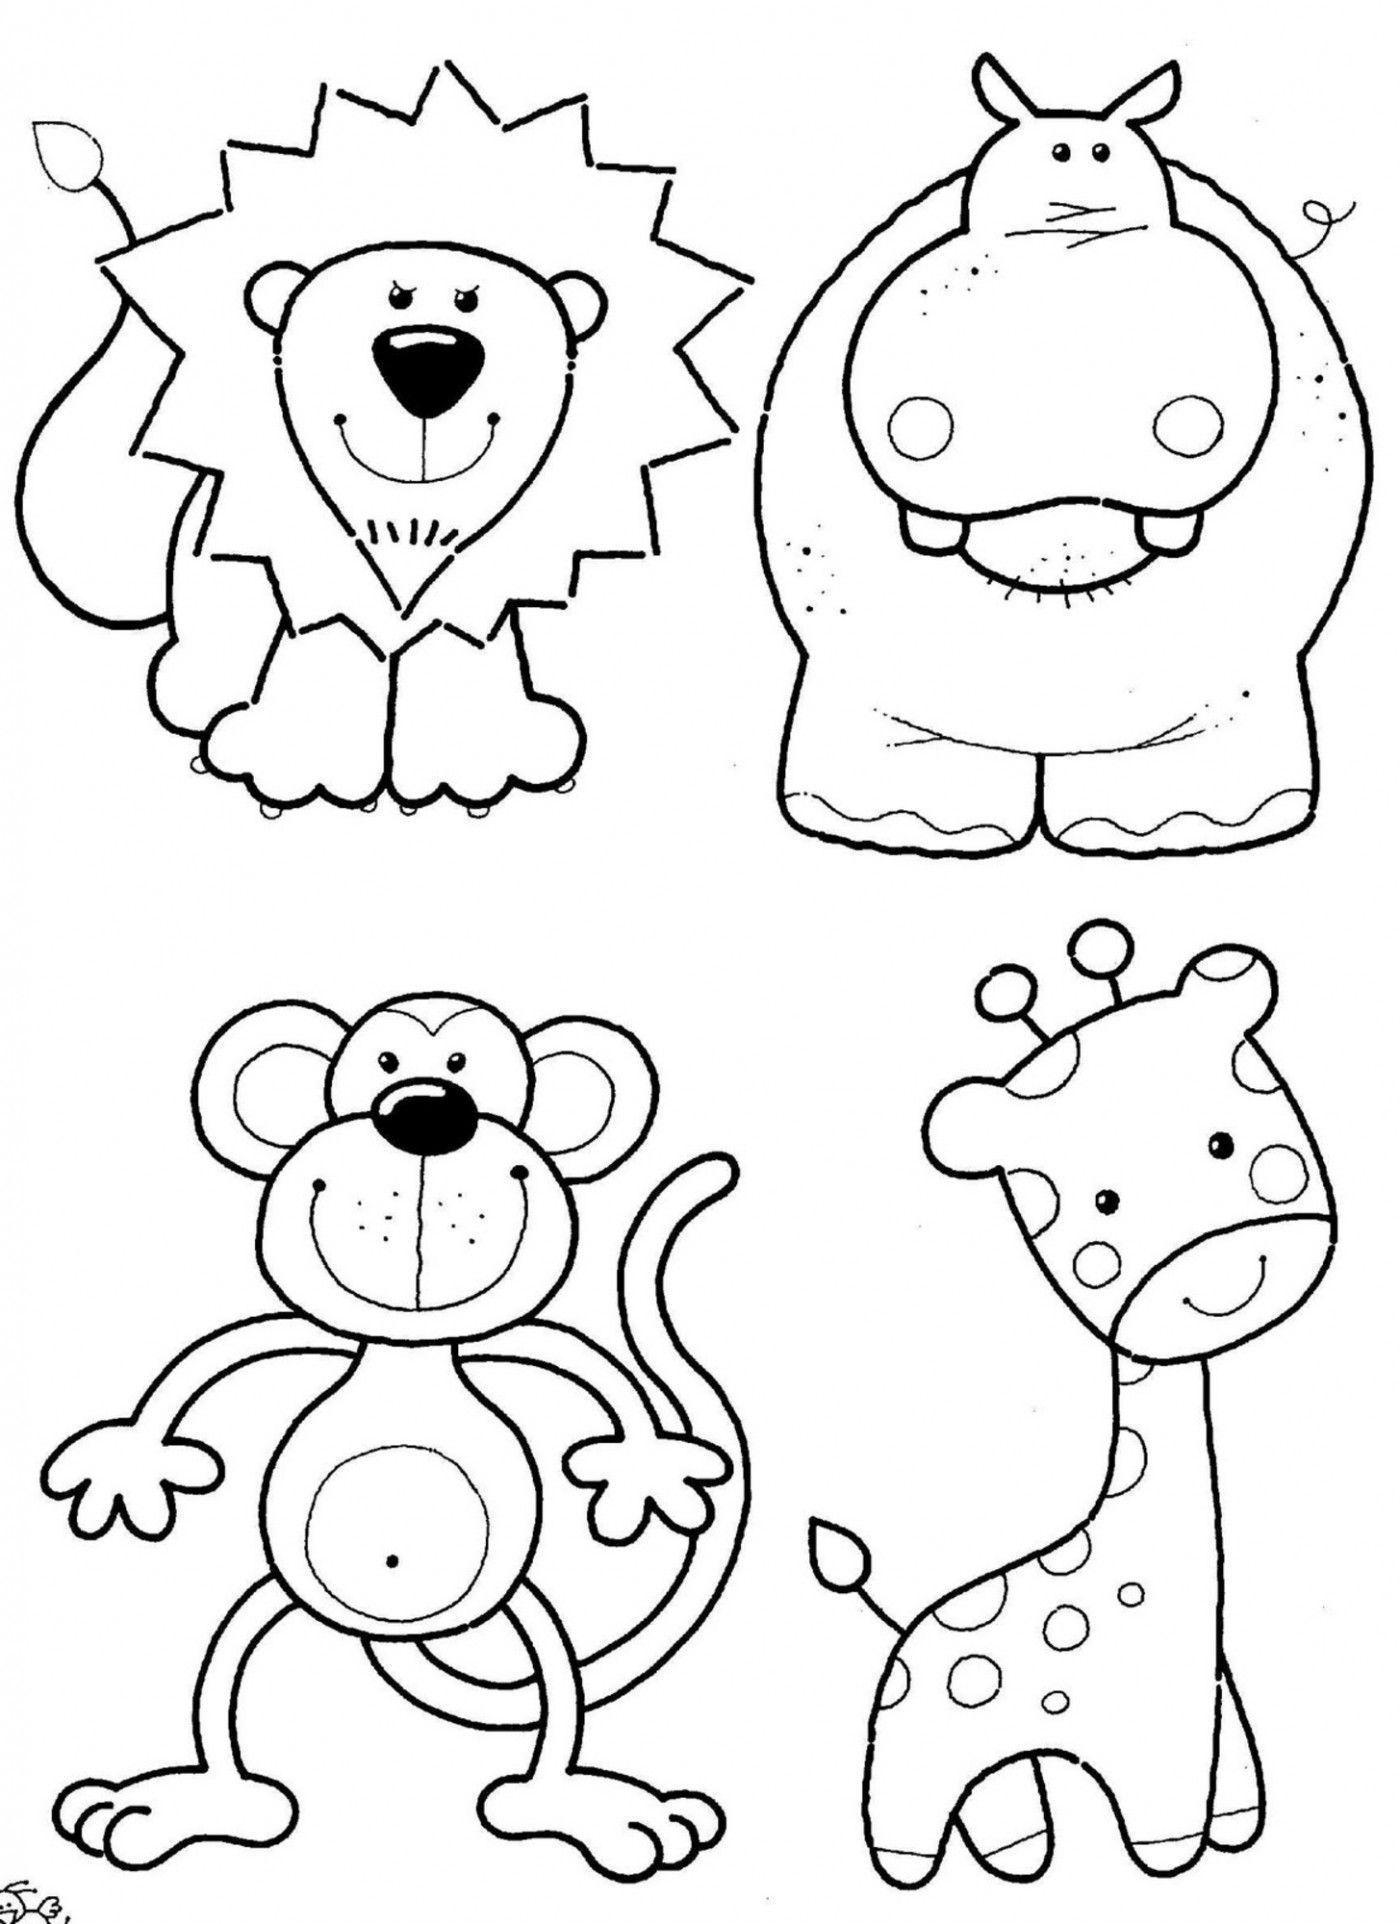 safari animal coloring pages zoo animals coloring pages best coloring pages for kids pages animal safari coloring